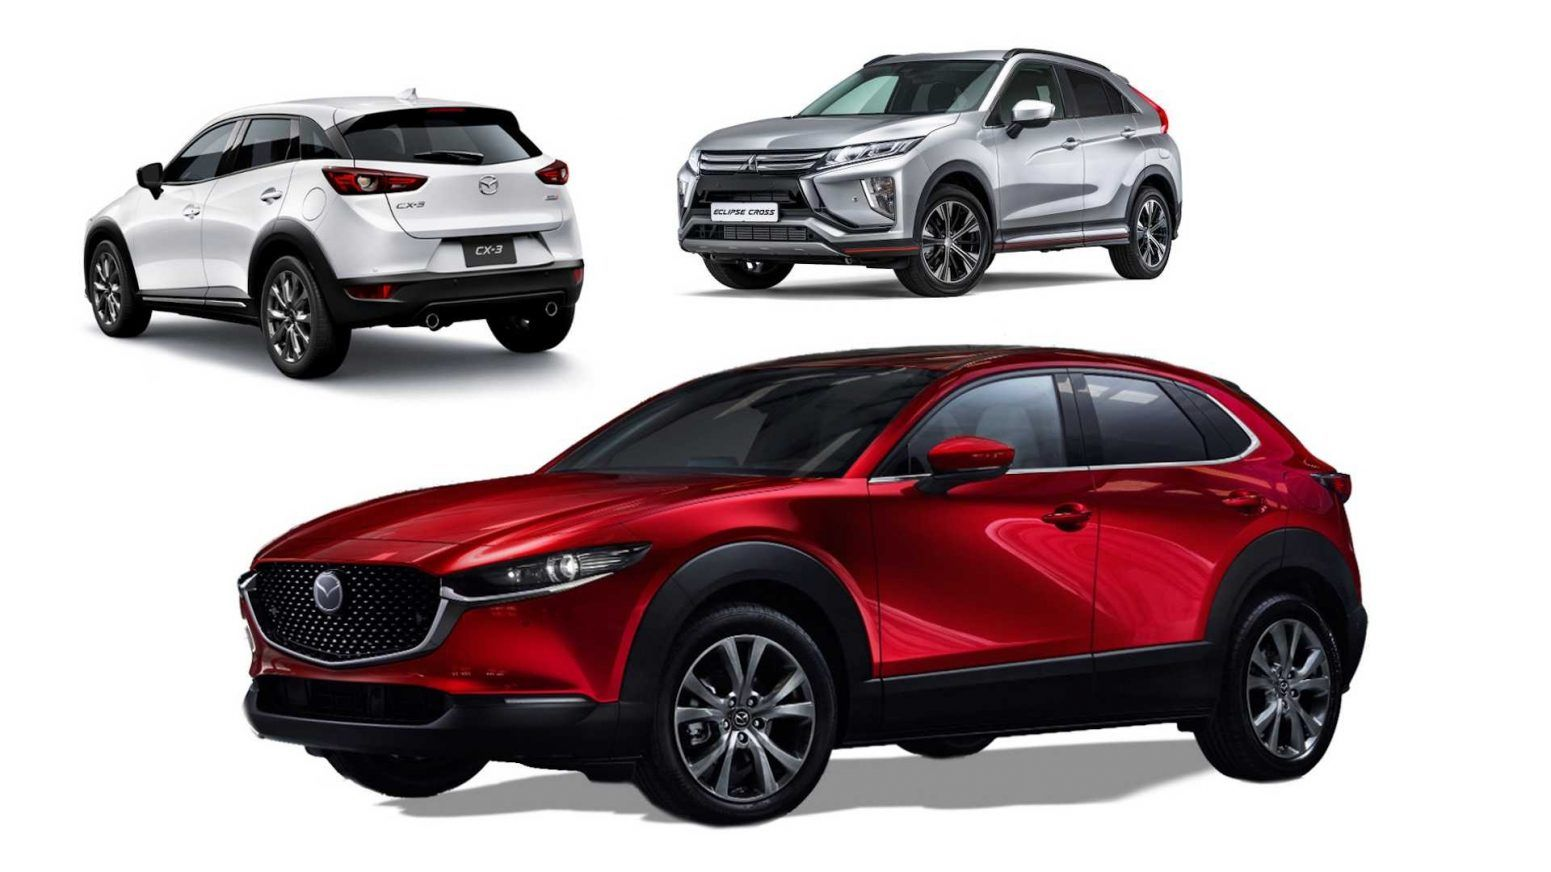 2020 Mazda Cx 3 Review Design Price Release Date Specs Photos